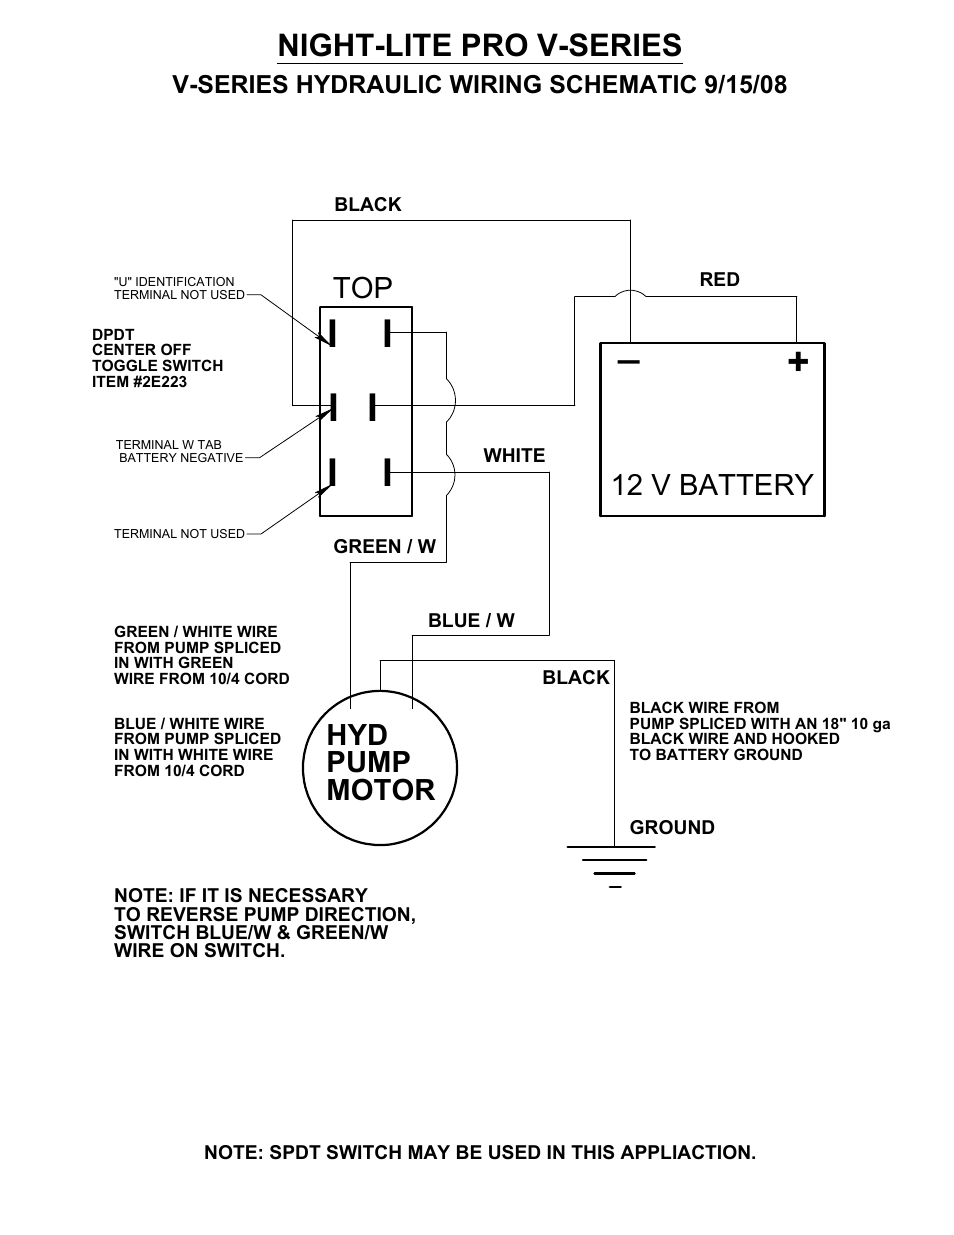 Name Night Lite Pro V Series Hyd Pump Motor 12 Battery Allmand Volt Wiring To Toggle On Off Switch Along With Nite Vertical Tower User Manual Page 78 90